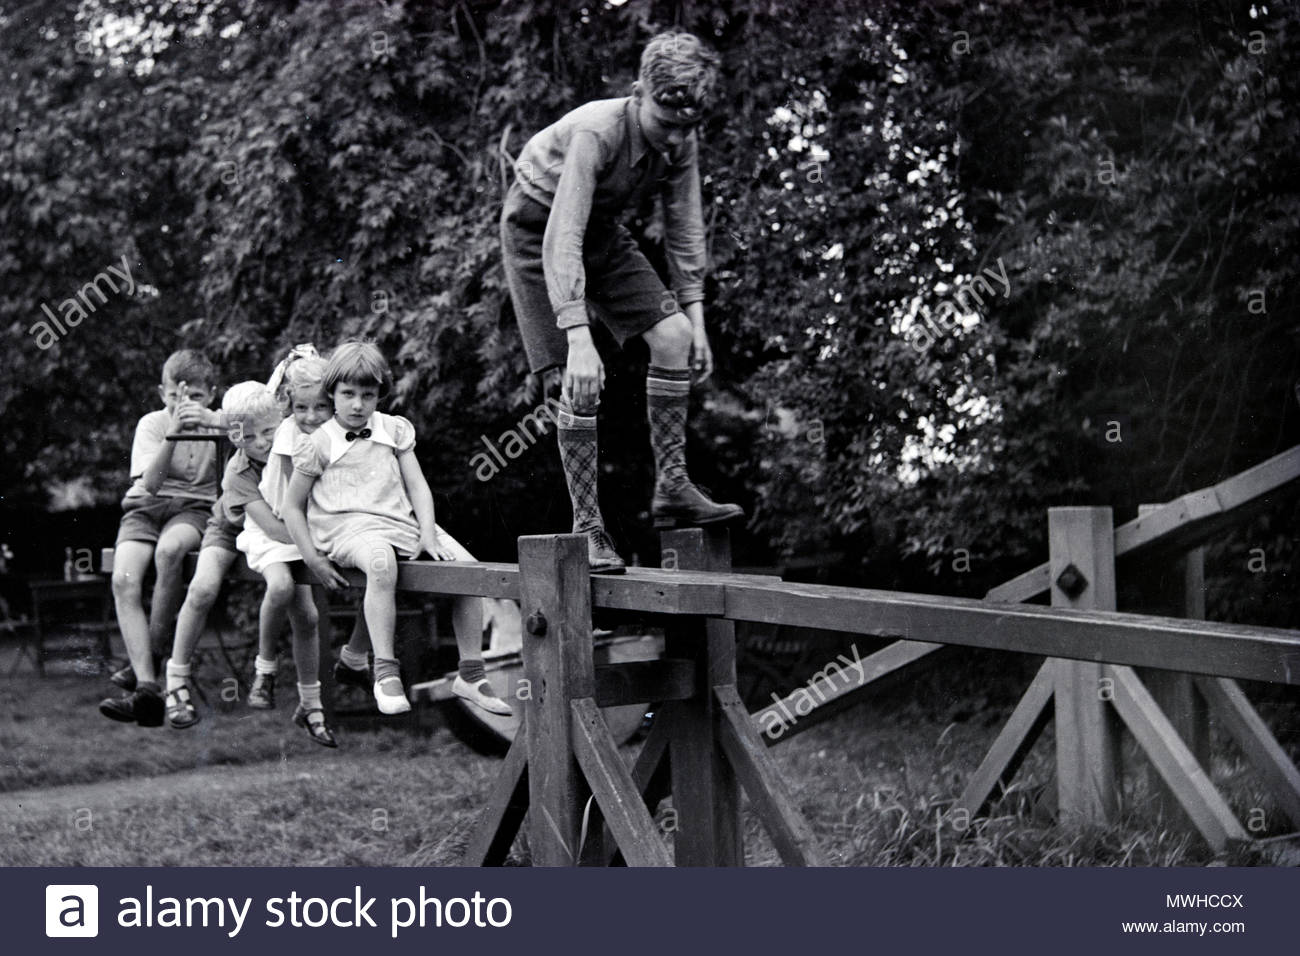 group of children playing on a large seesaw Netherlands 1950s - Stock Image